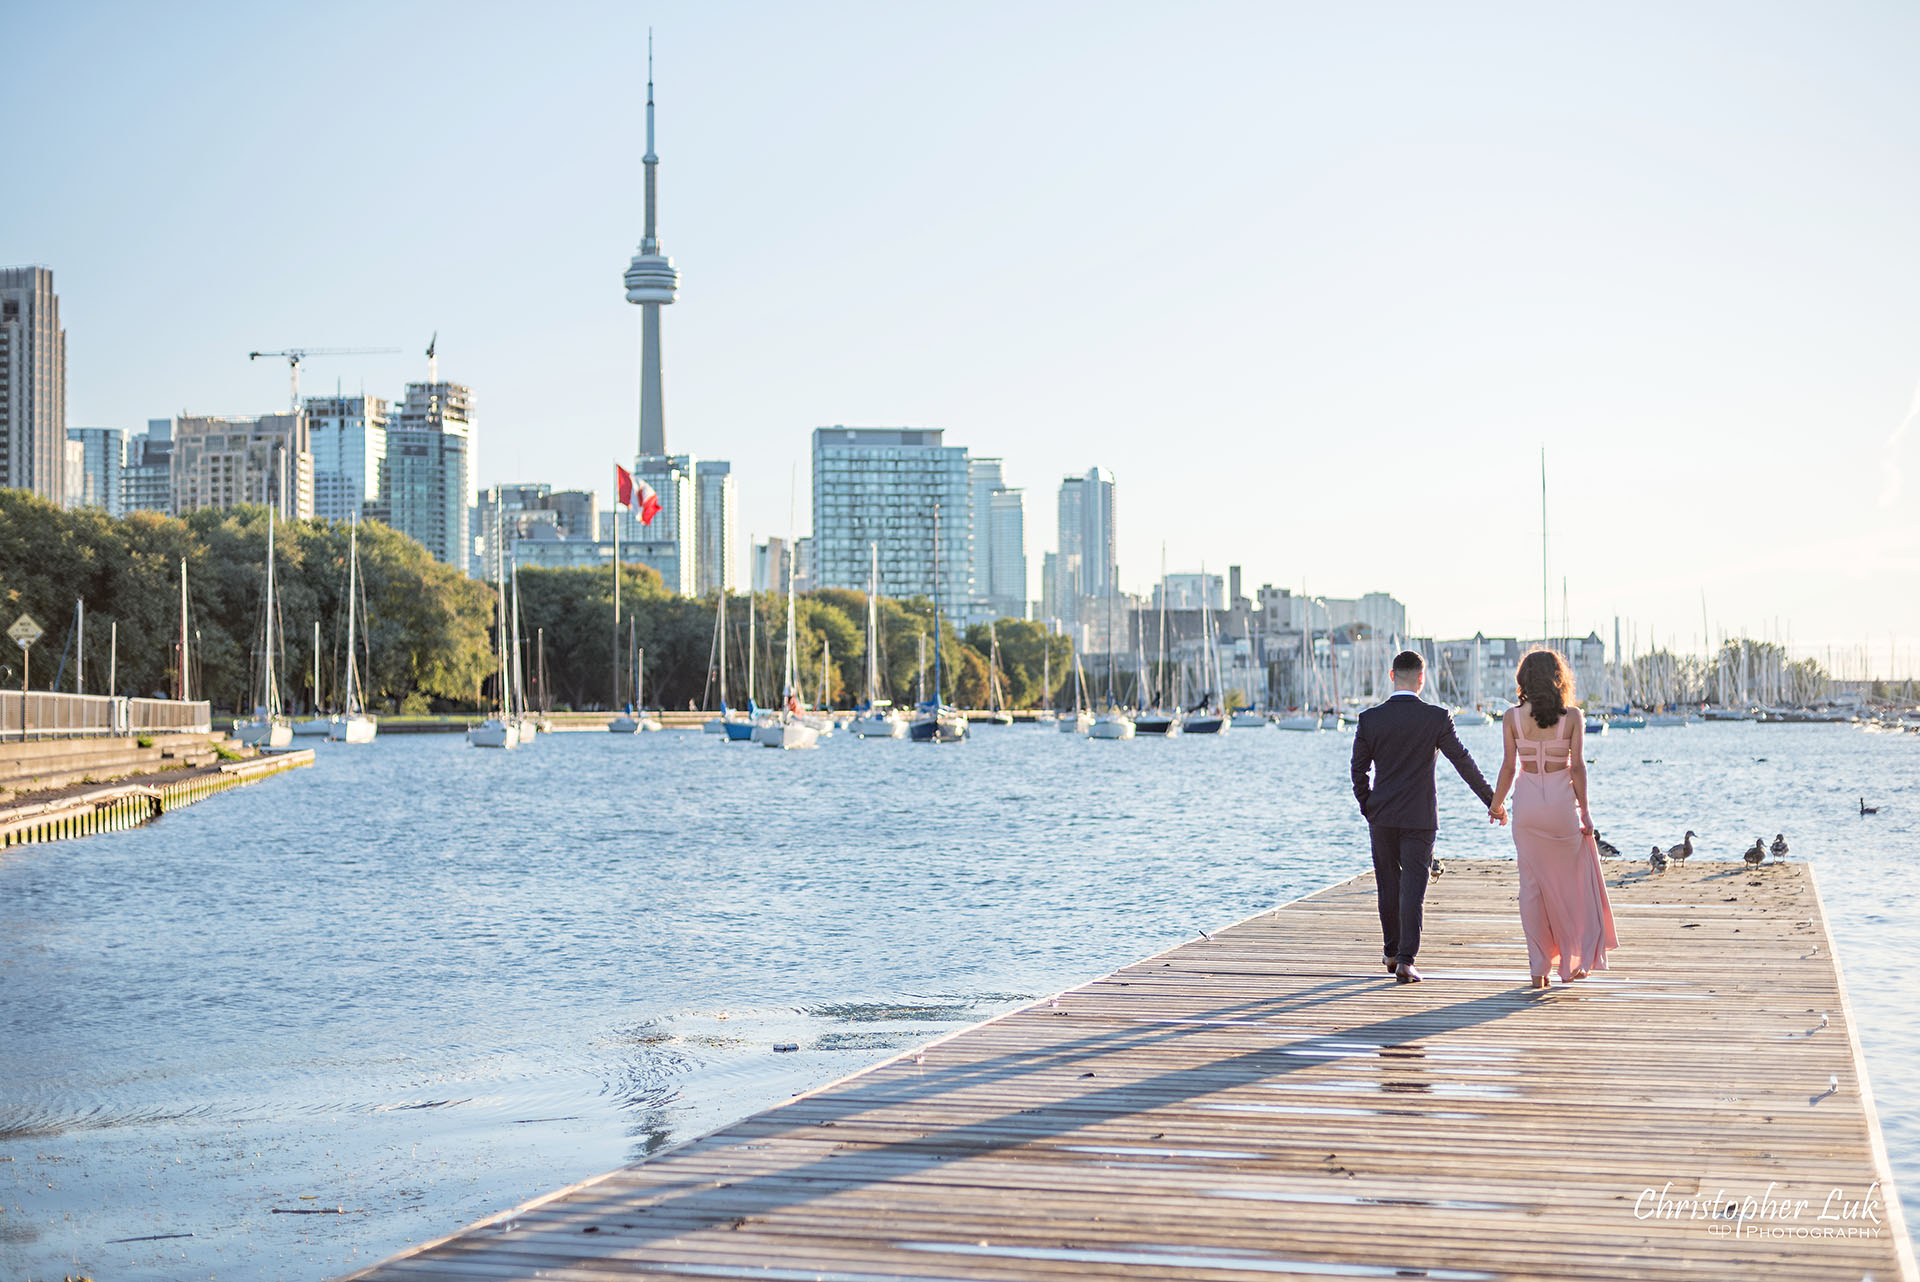 Christopher Luk Trillium Park Ontario Place Waterfront Engagement Session Toronto Wedding Photographer Bride Groom Natural Candid Photojournalistic Boat Dock CN Tower Skyline Background Sunrise Walking Together Hotel X